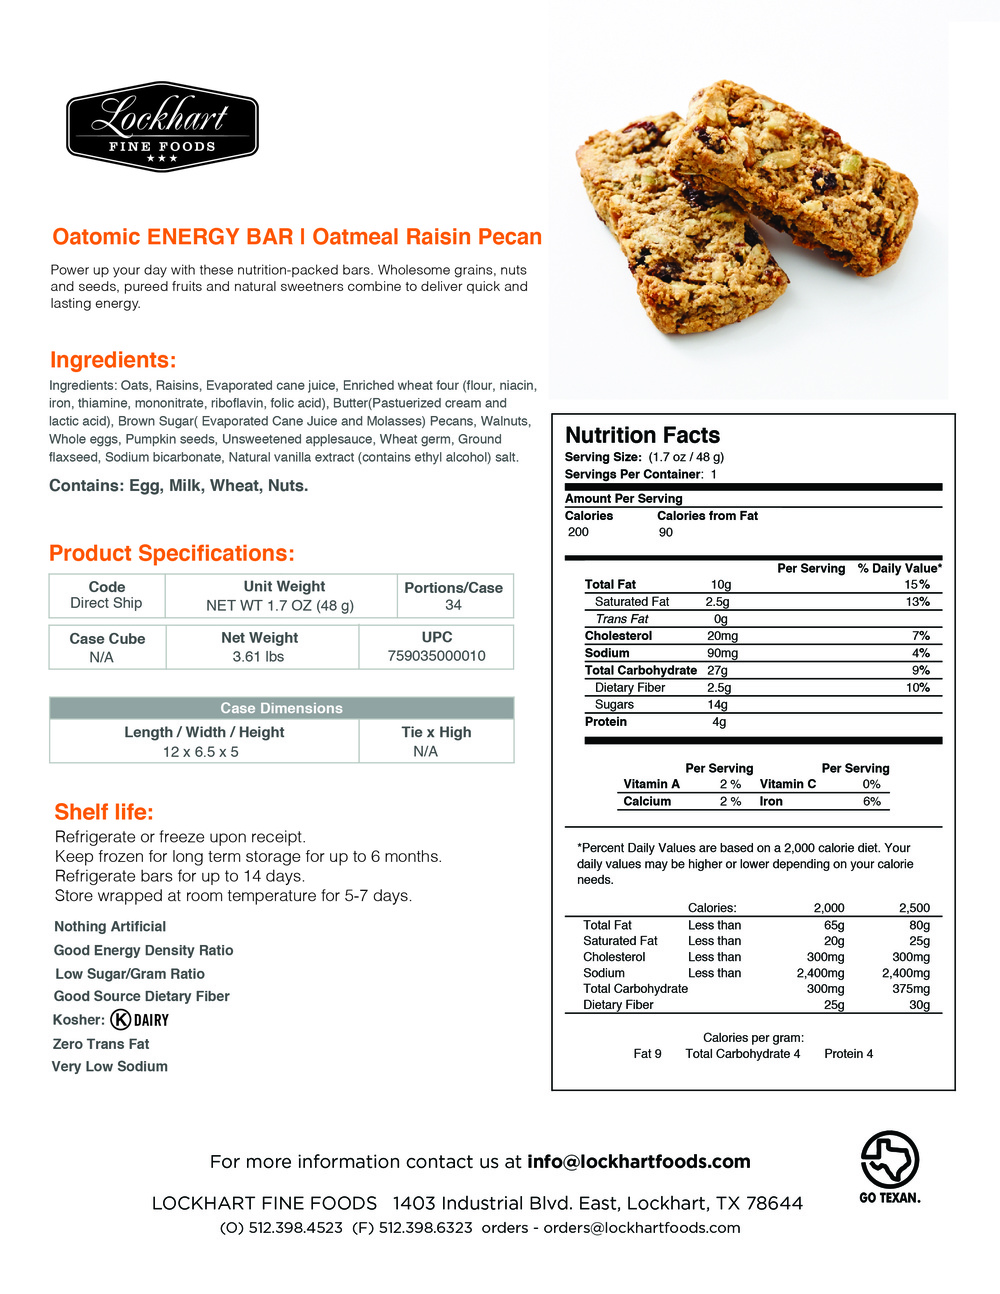 Energy Bar Oat Raisin Nut Facts